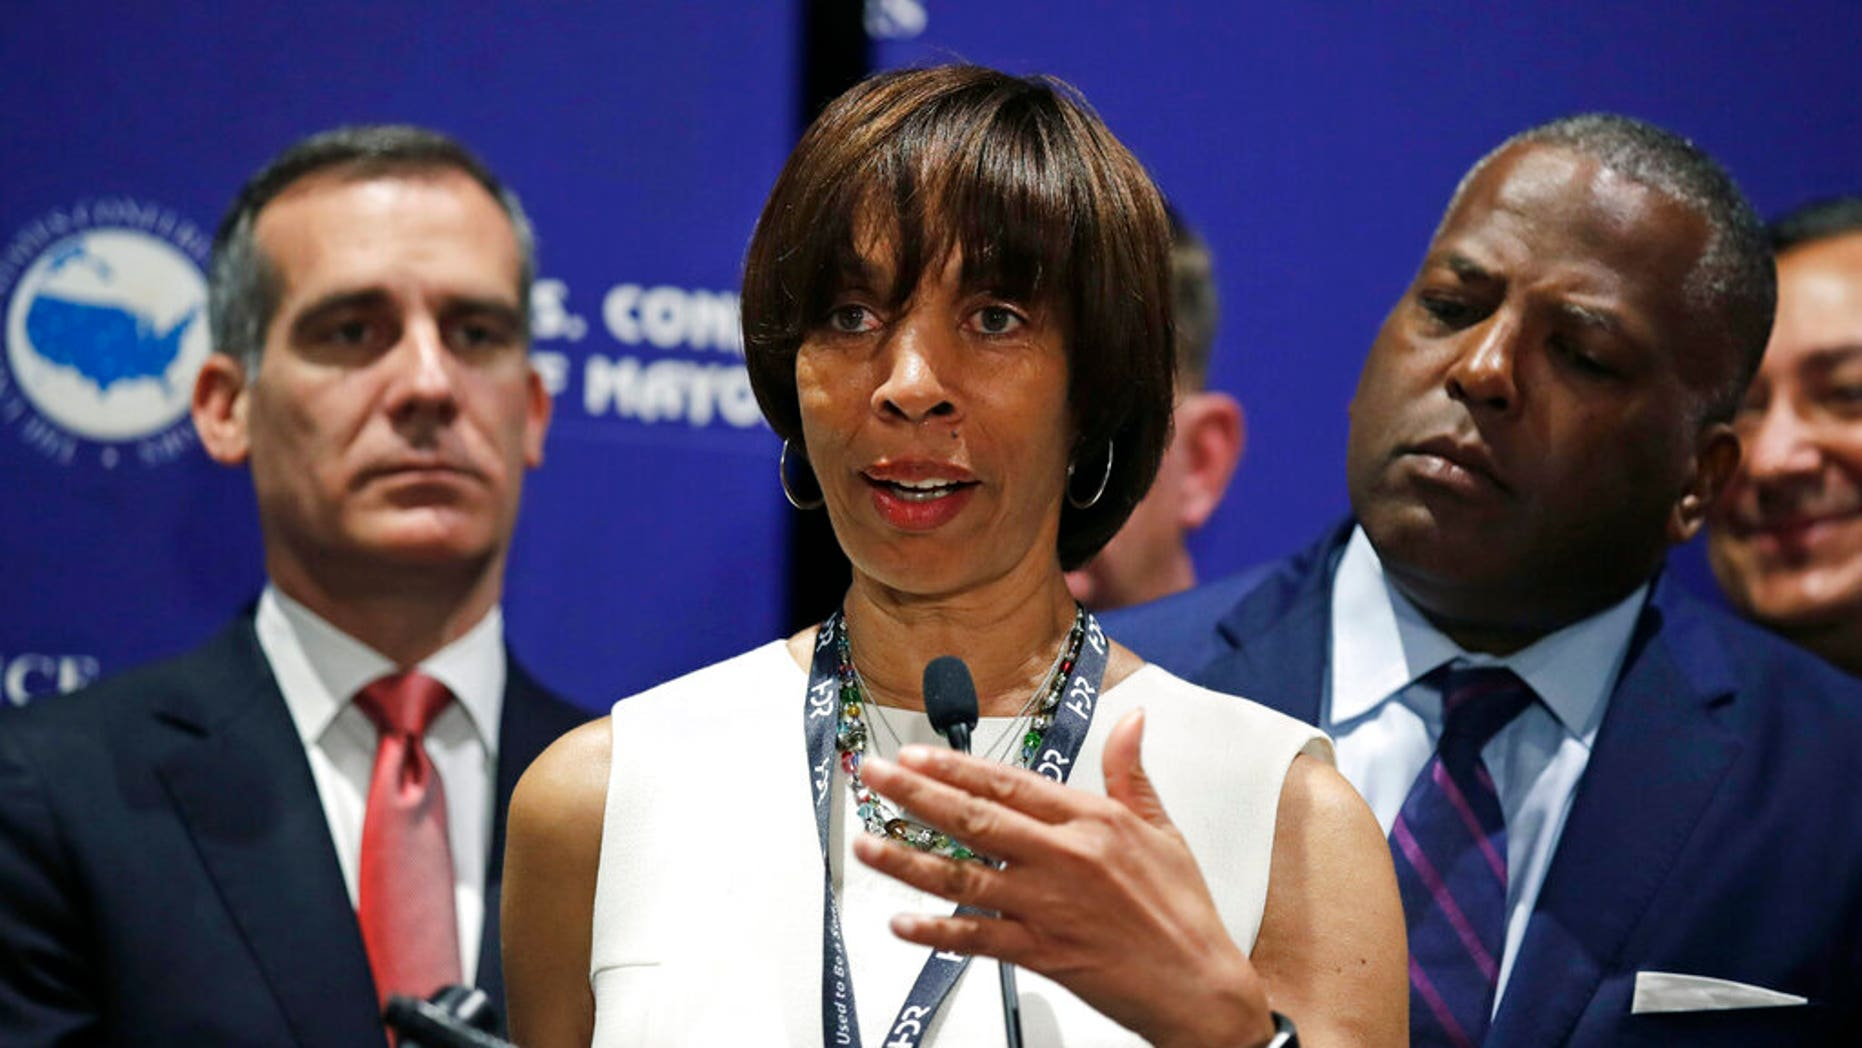 Baltimore Mayor Catherine Pugh announced on Monday that she's taking an indefinite leave from office for health reasons.